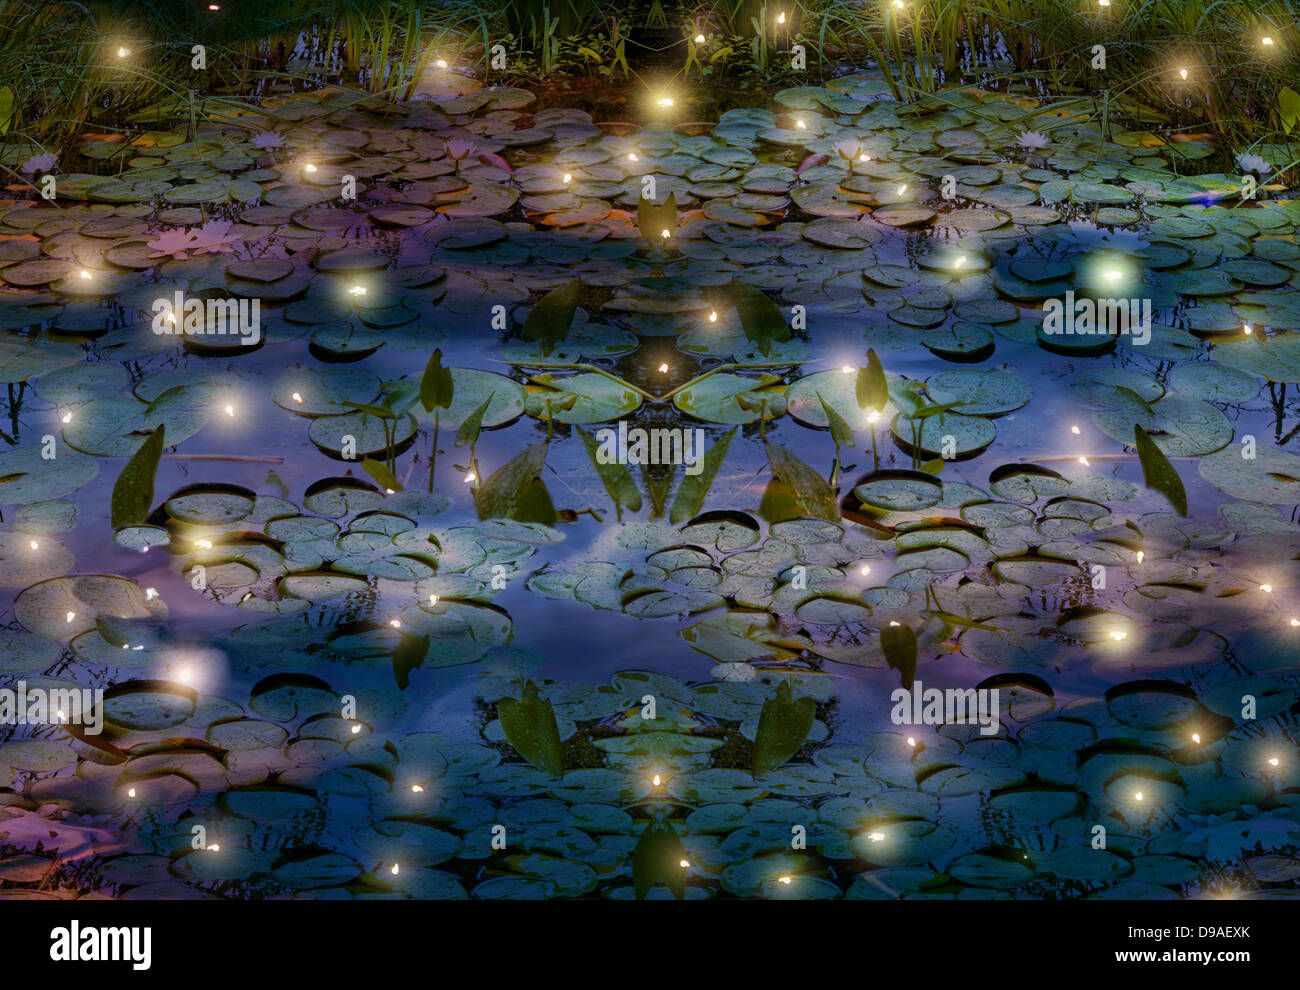 fireflies and water lily pond depiction Stock Photo